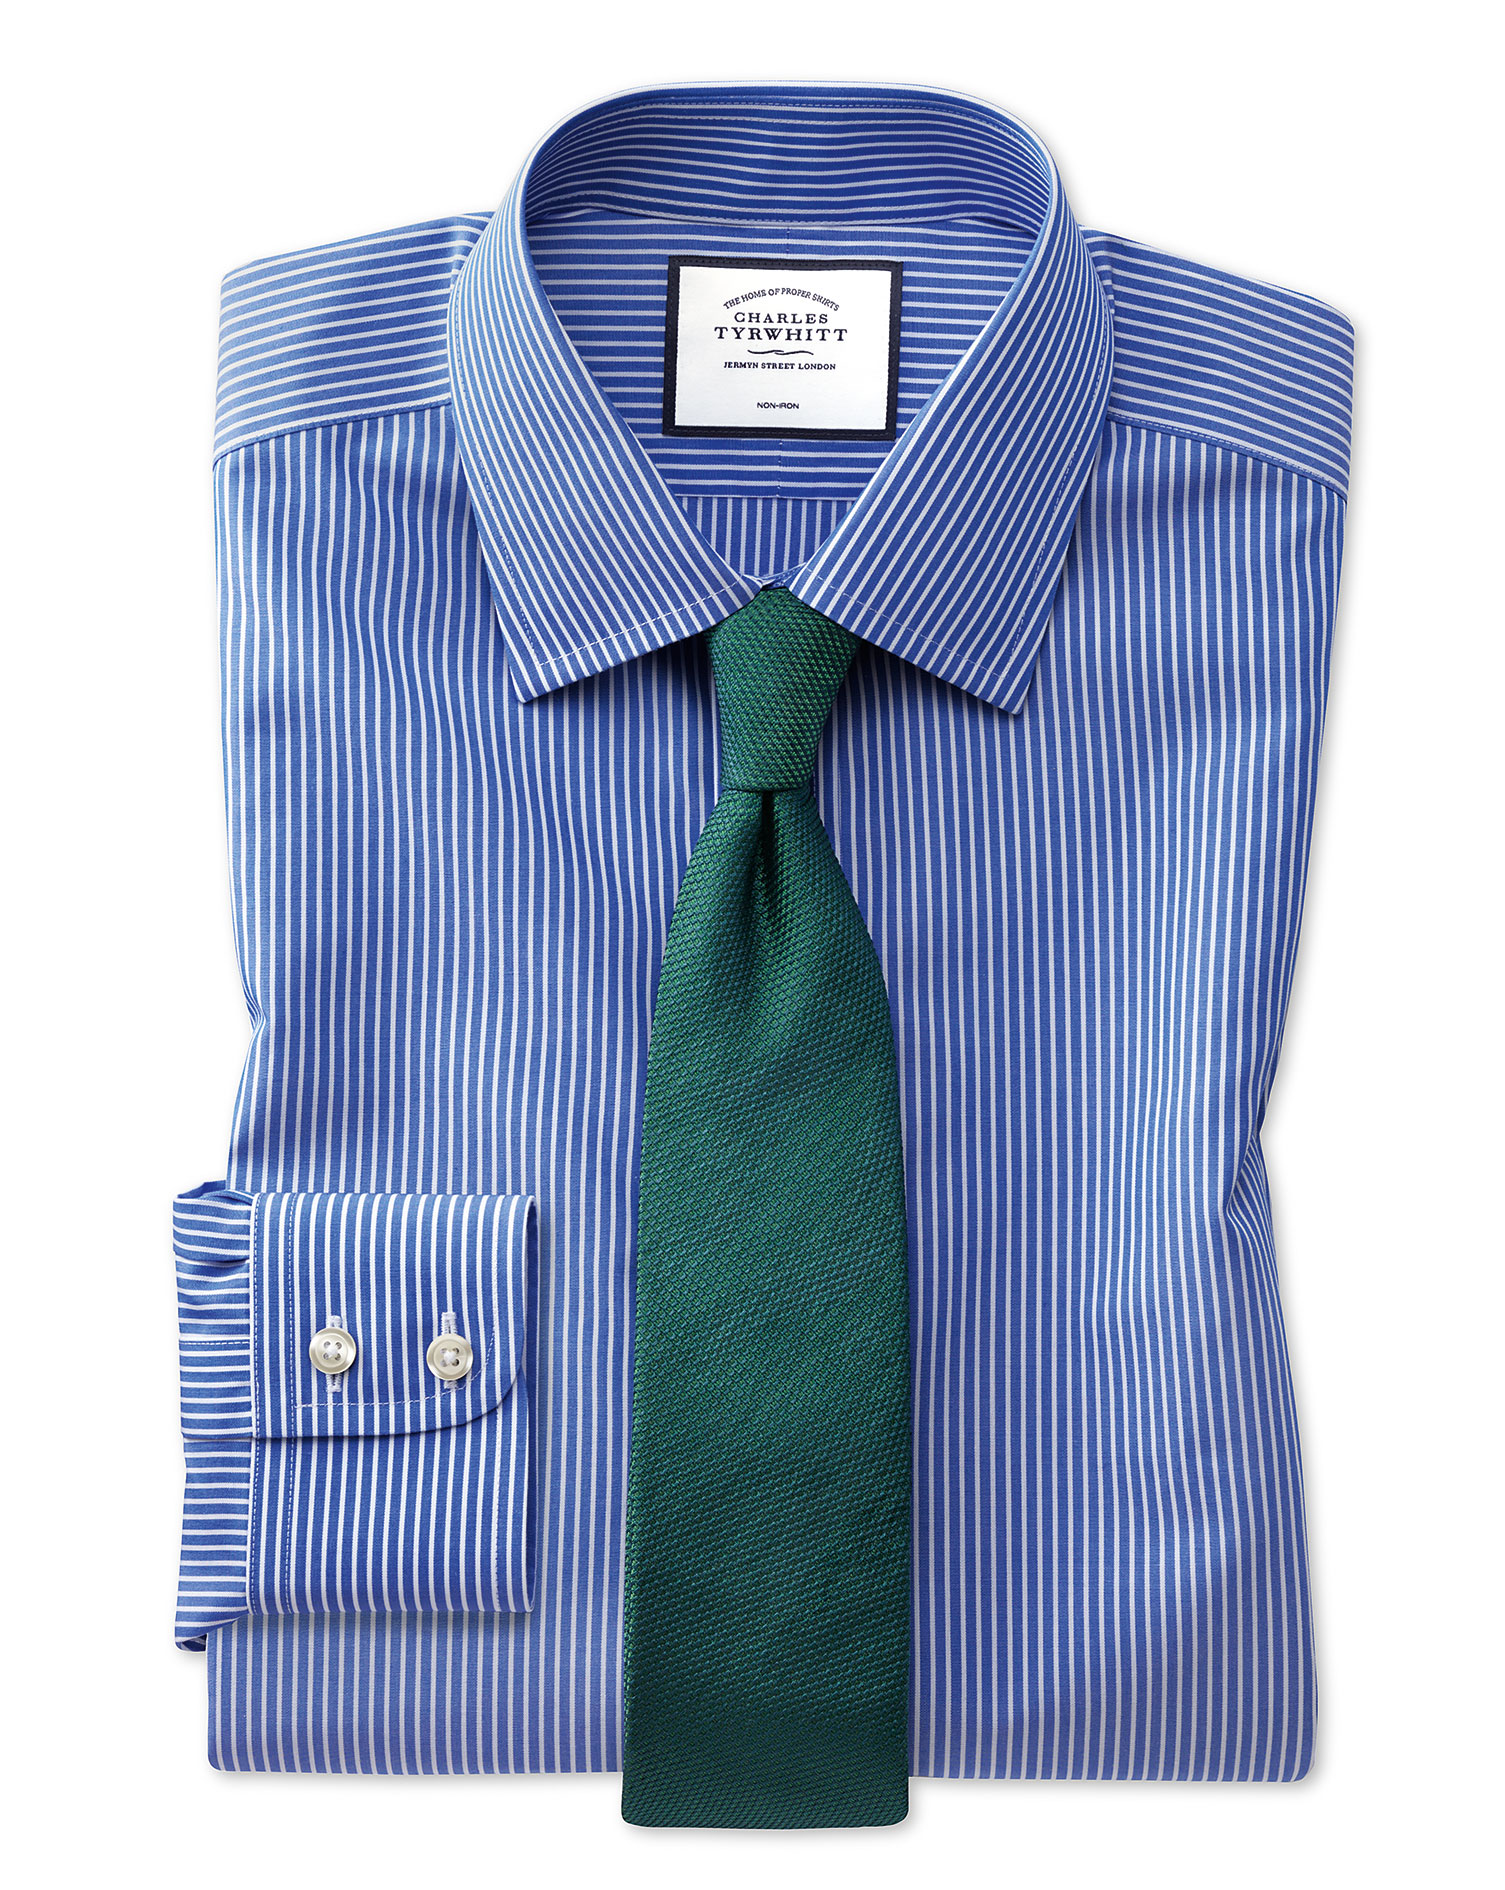 Slim Fit Non-Iron Stripe Blue and White Cotton Formal Shirt Single Cuff Size 17/34 by Charles Tyrwhi